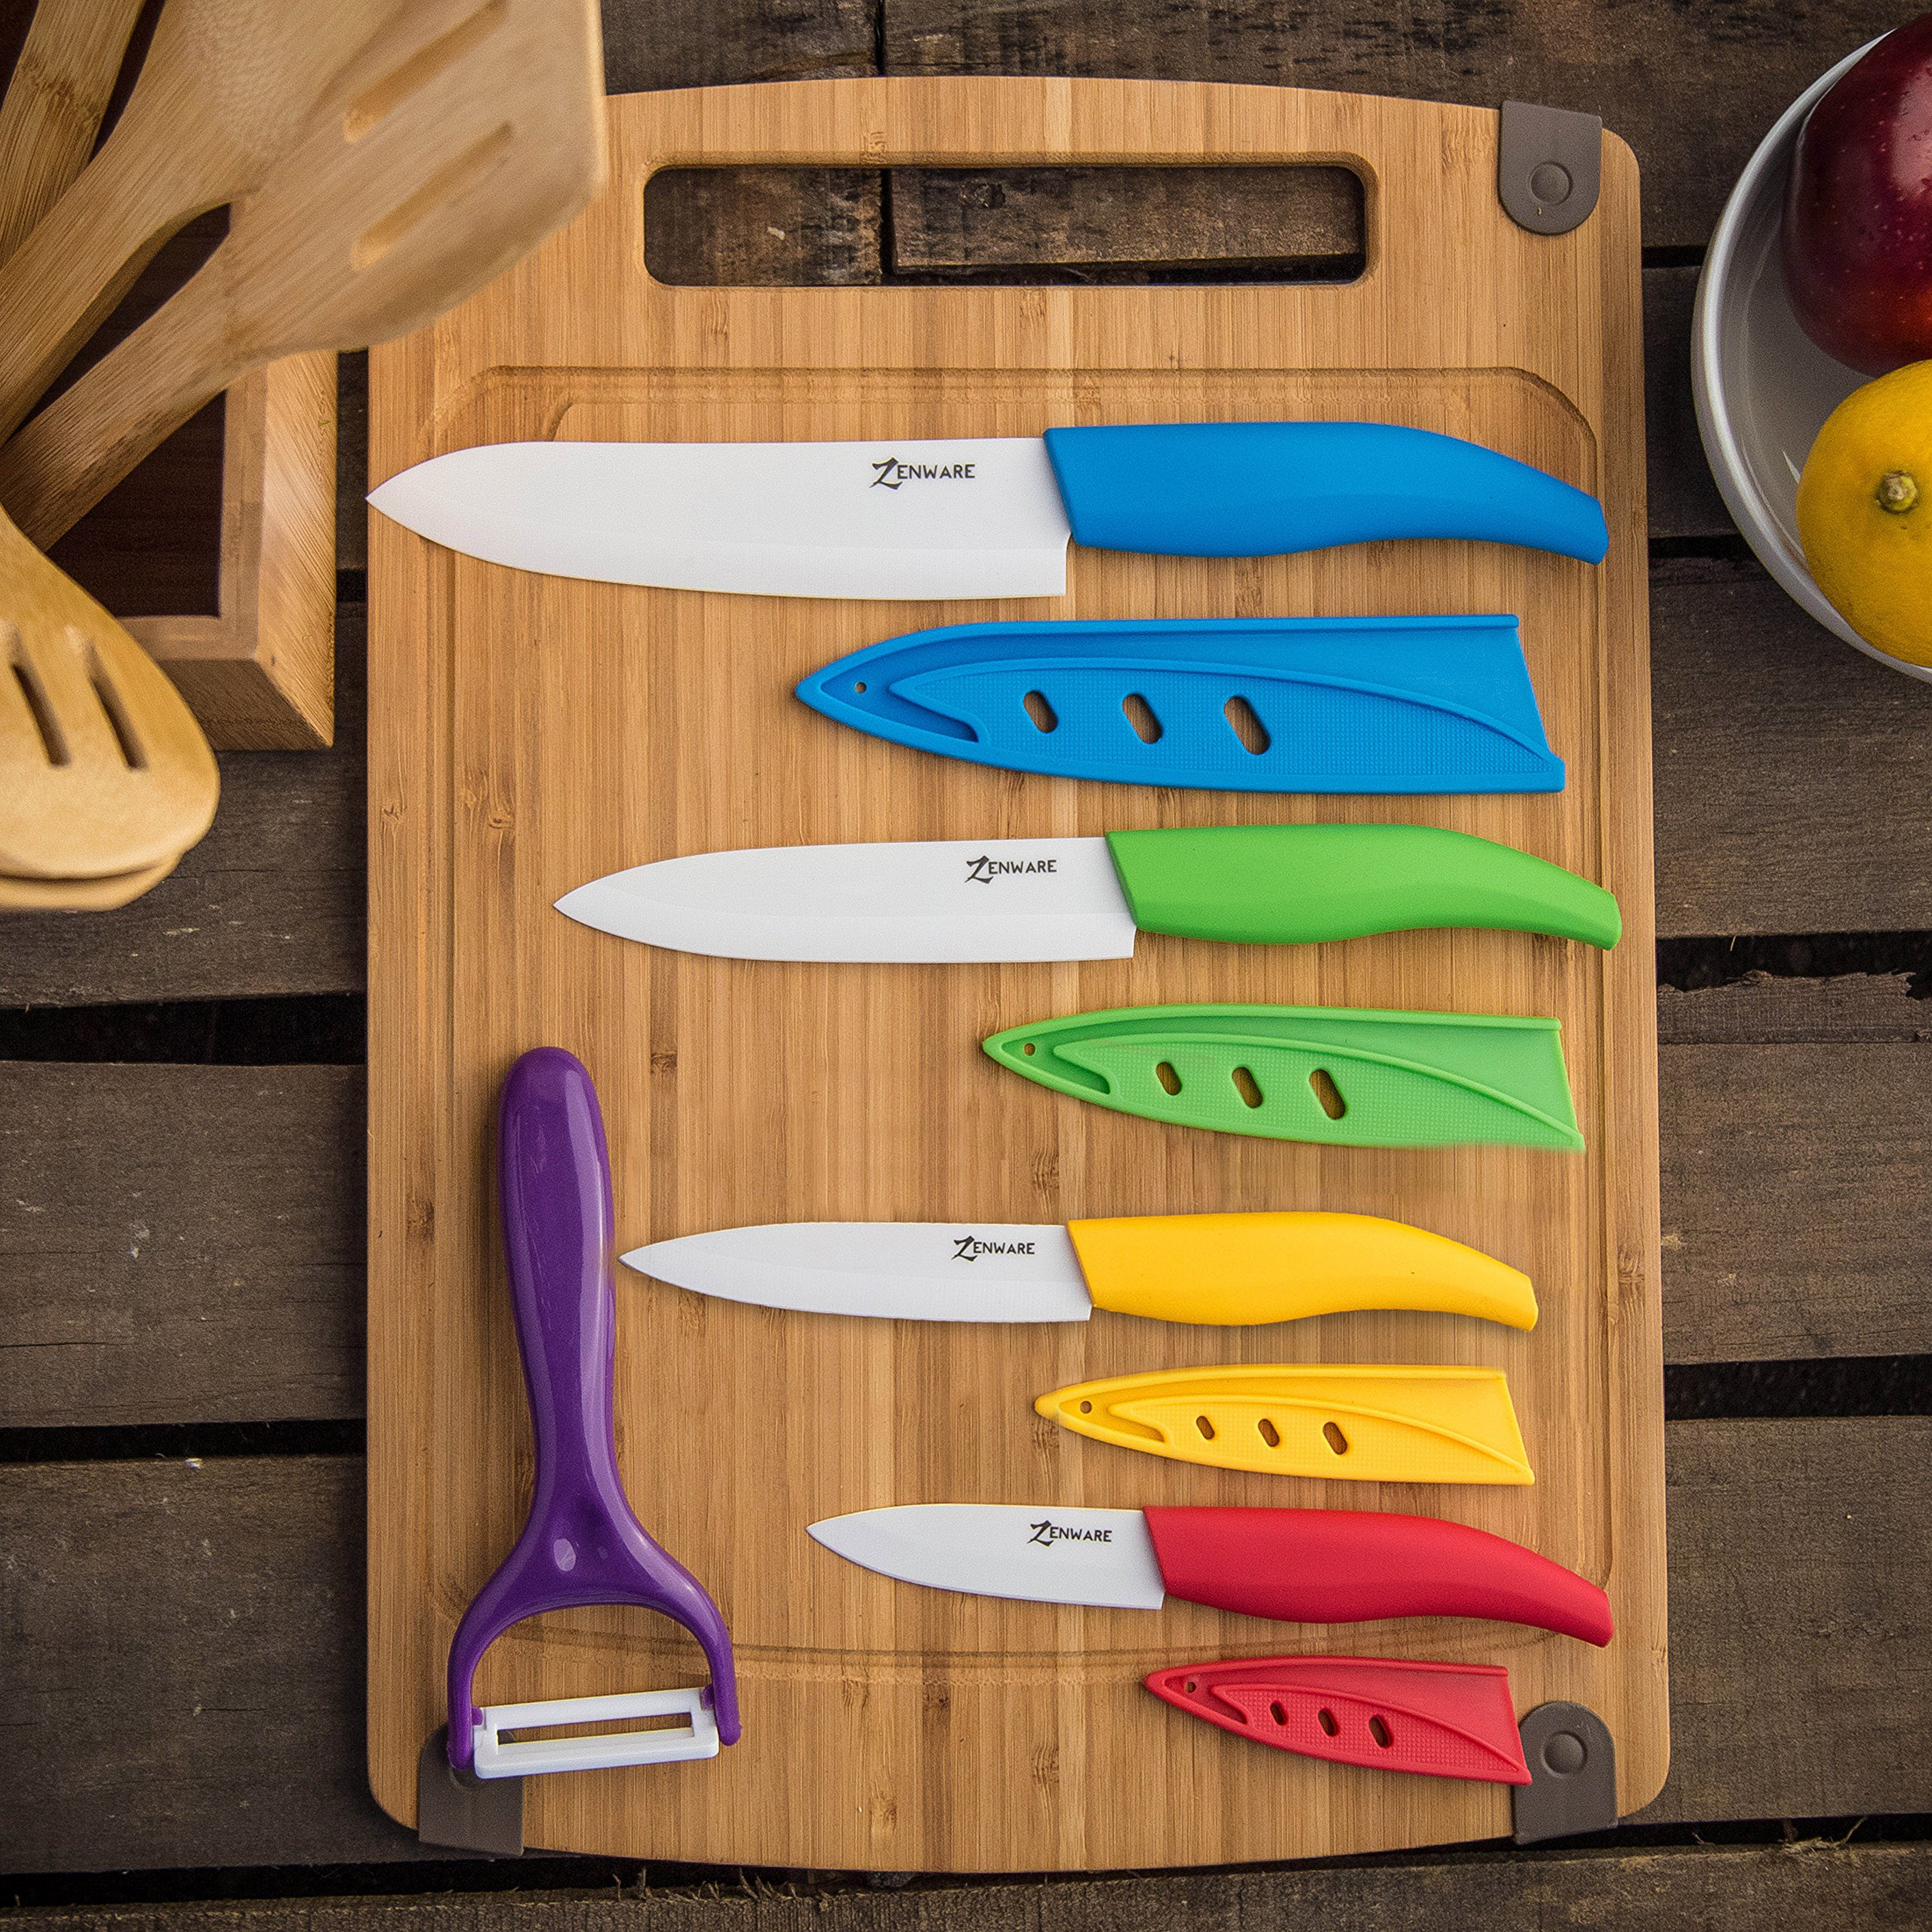 ZenWare 9 Piece Multi Color Ceramic Cutlery Kitchen Knives with Fruit Peeler - Knife Set by APlus+ (Image #4)